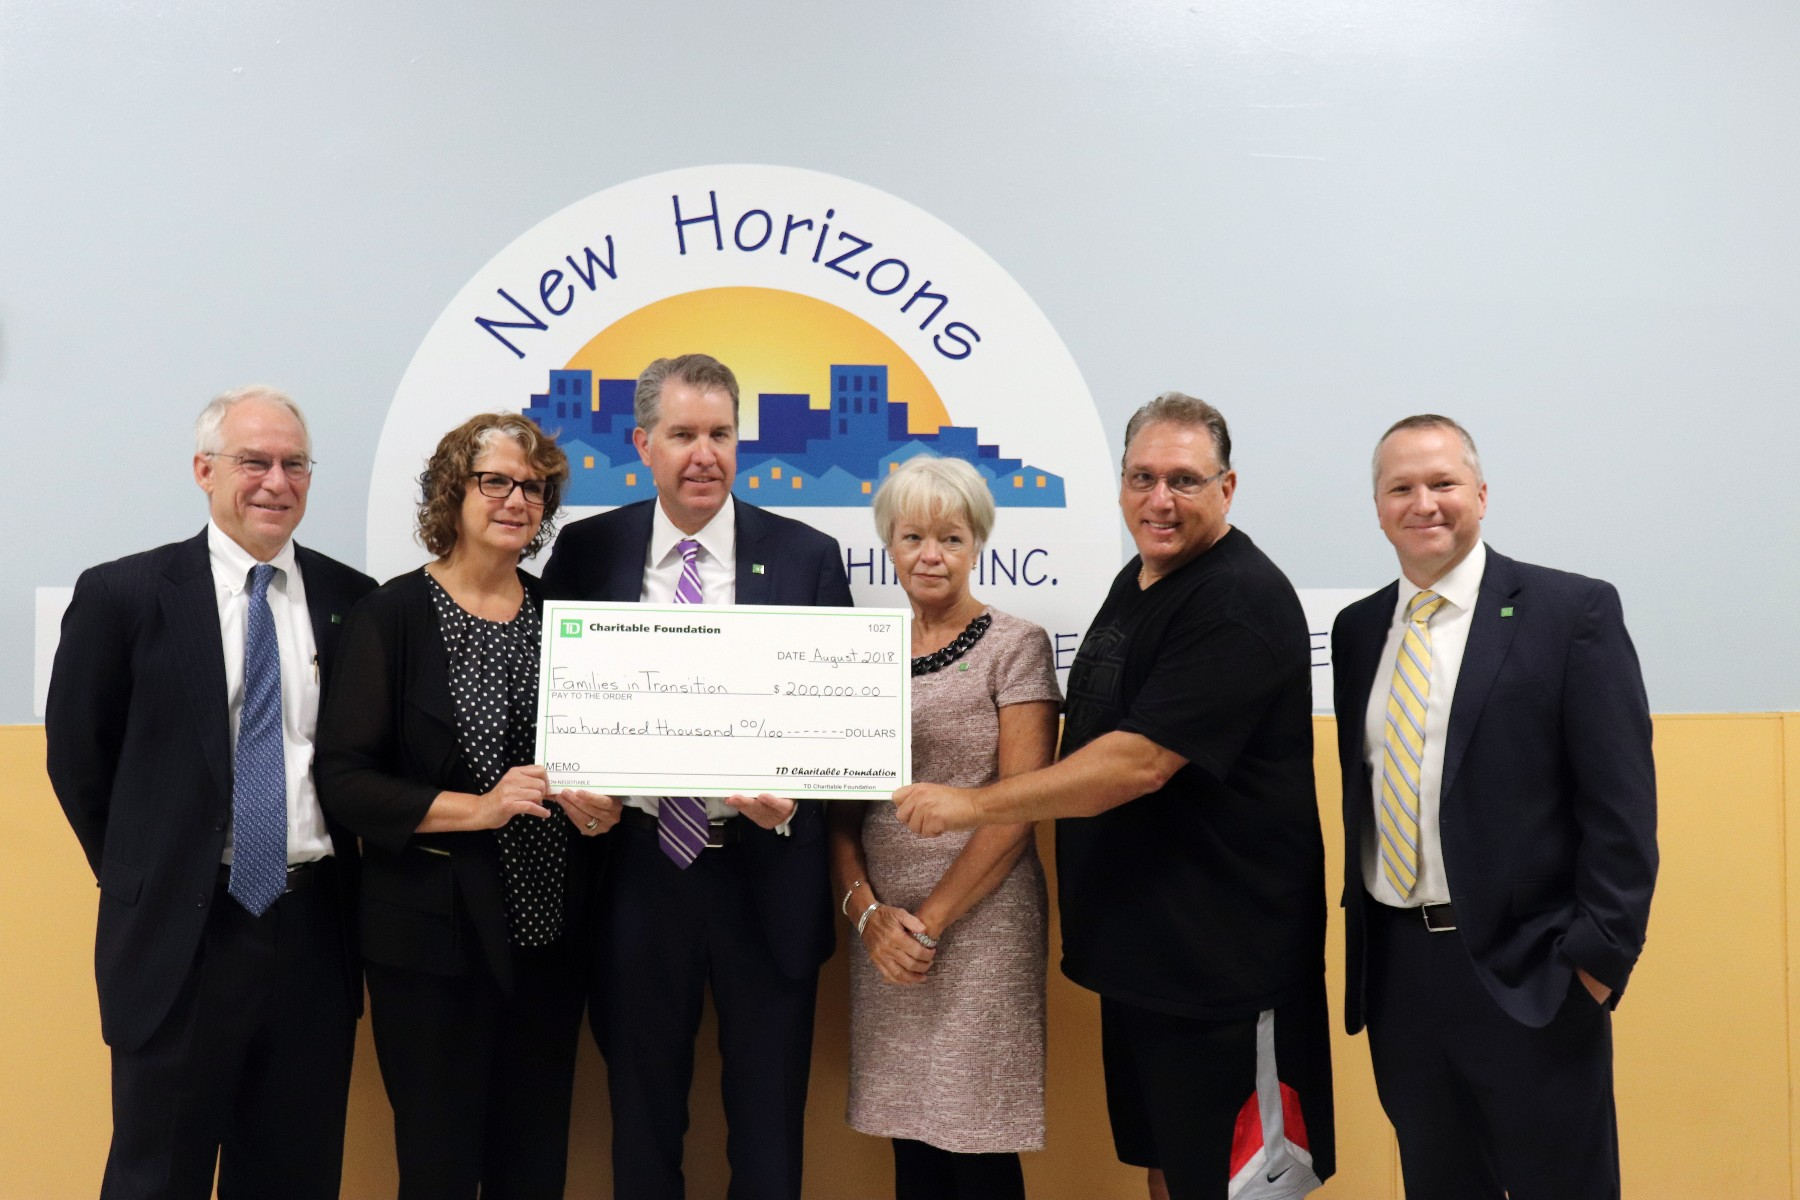 200k Donation From Td Bank Foundation To Assist Fit New Horizons